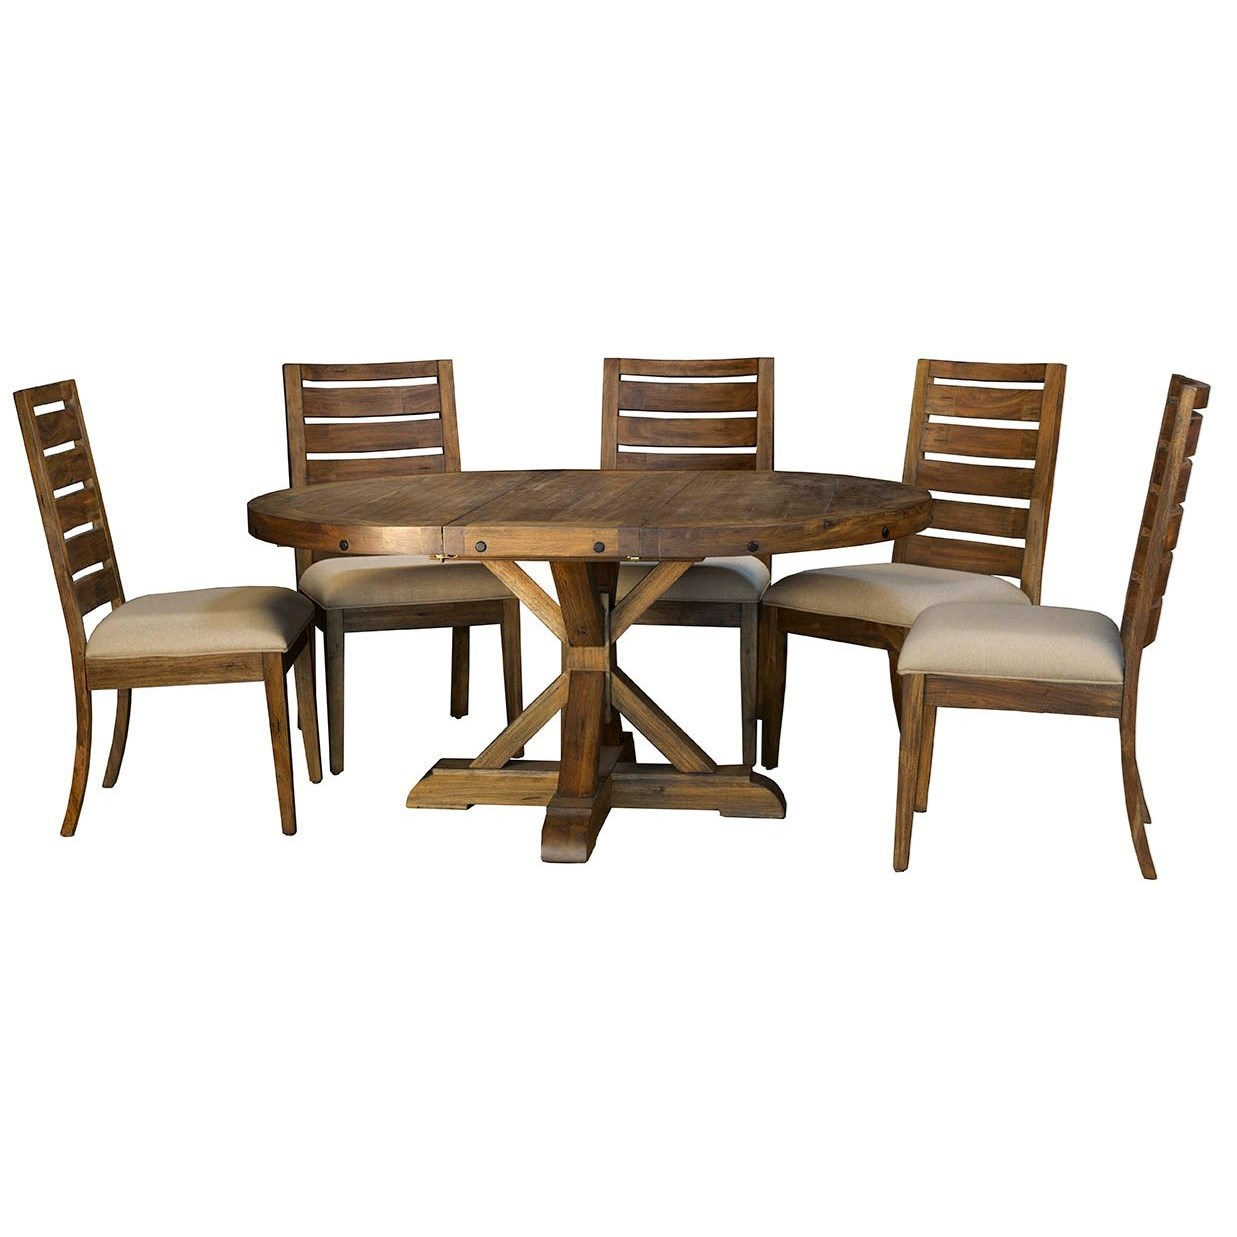 AAmerica Anacortes 6 Piece Dining Set - Item Number: ANA-SM-6-20-0+5xANA-SM-2-45-K